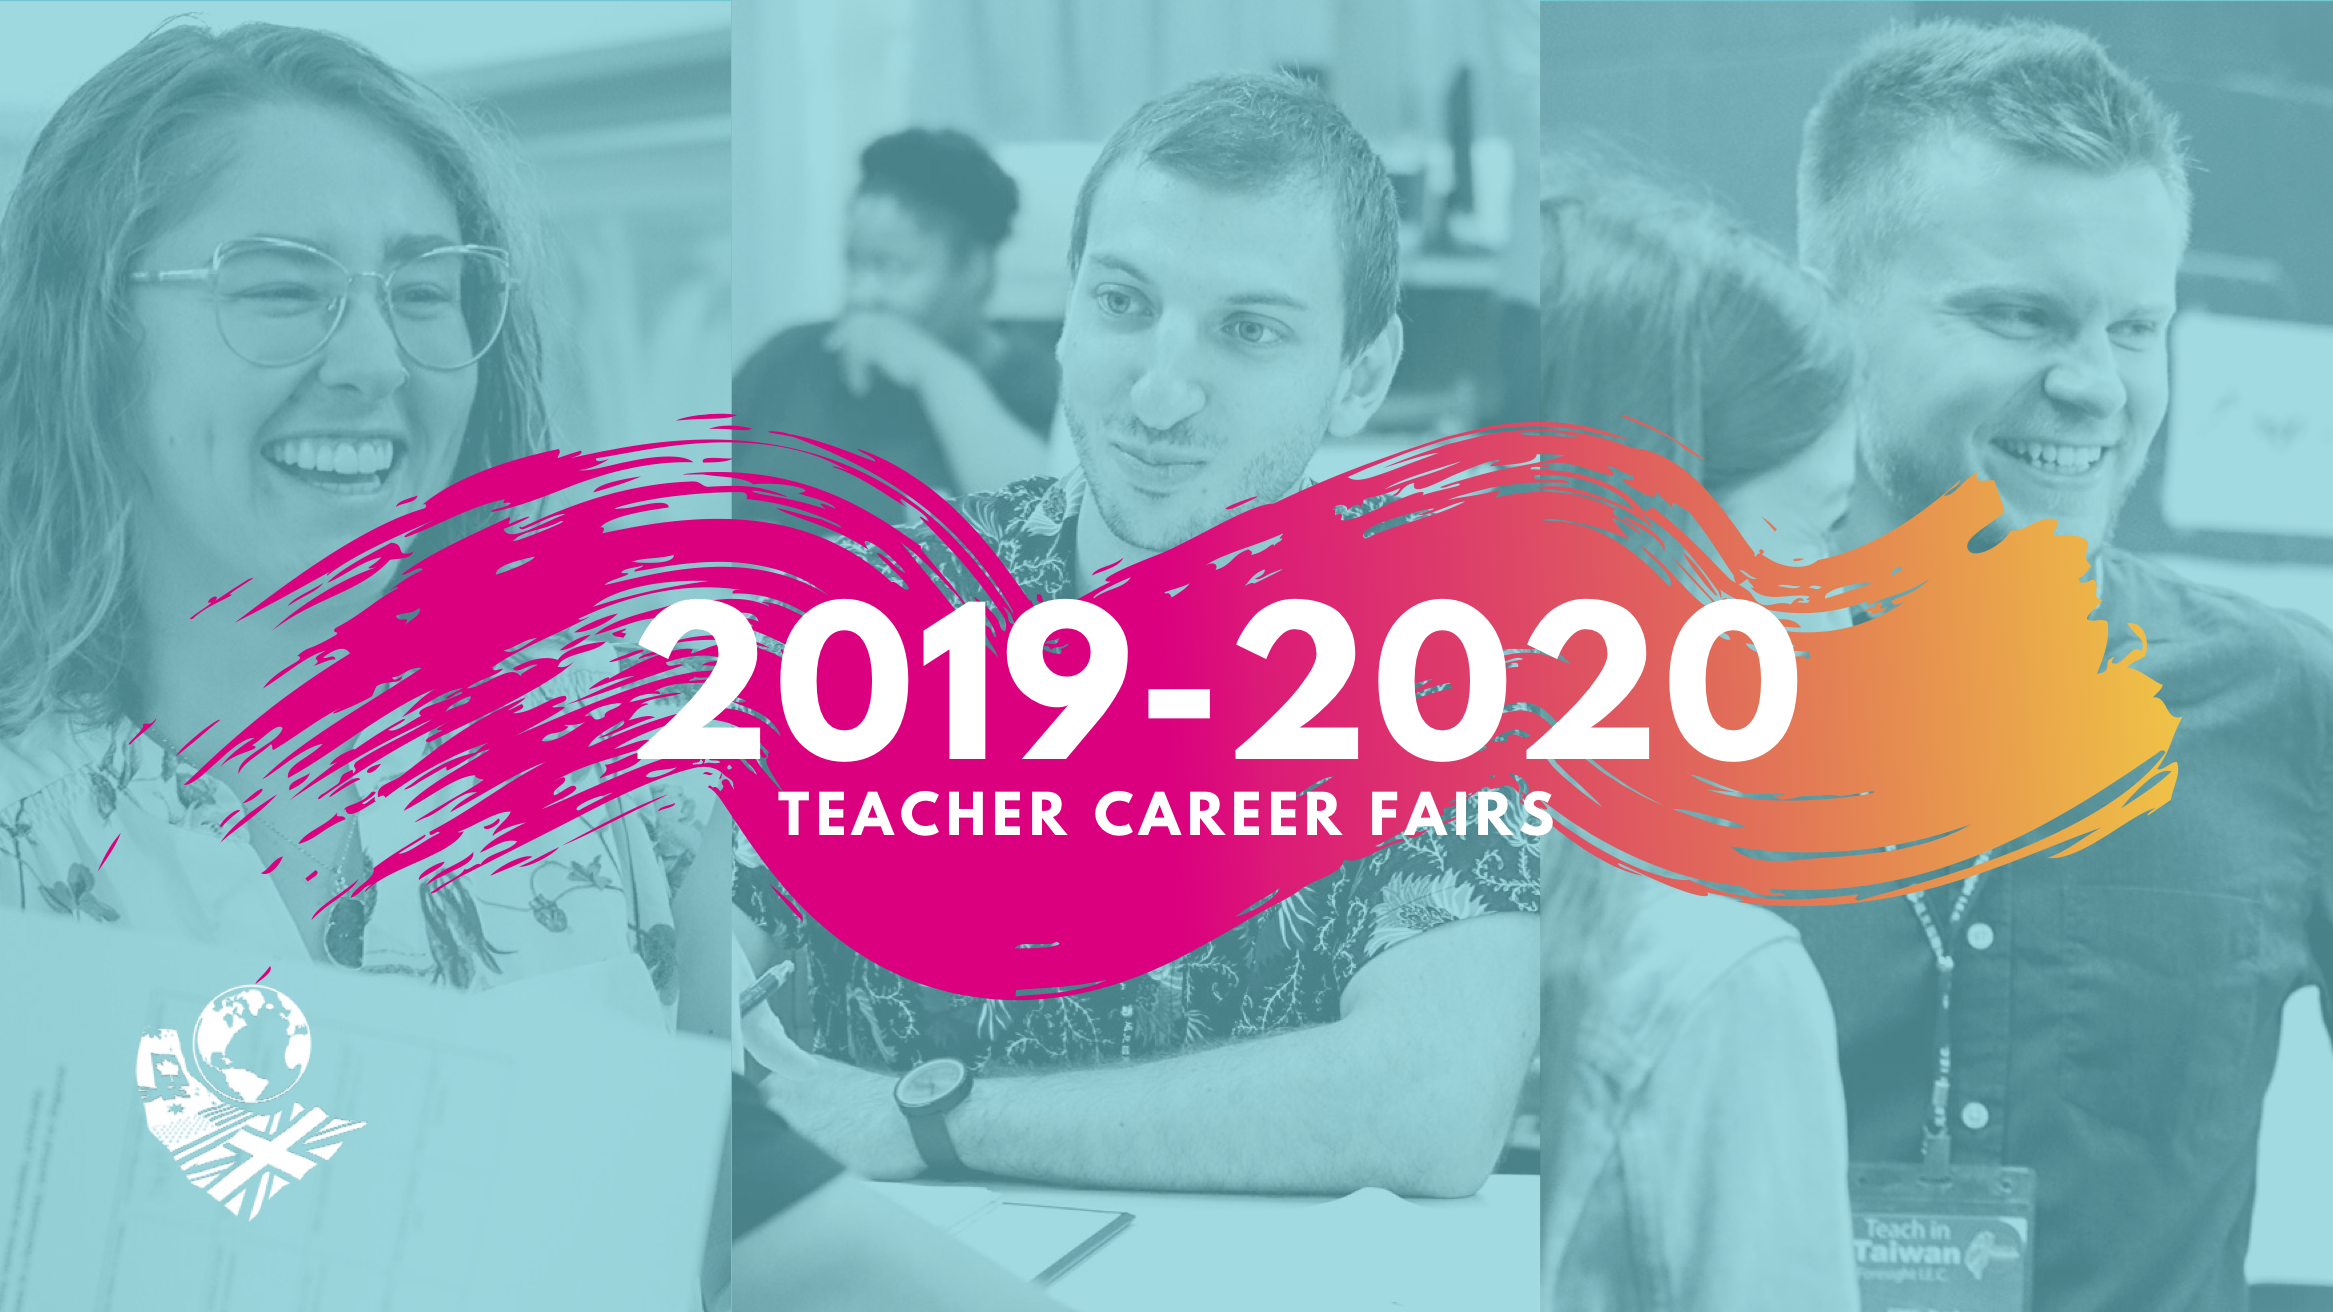 teacher career fairs